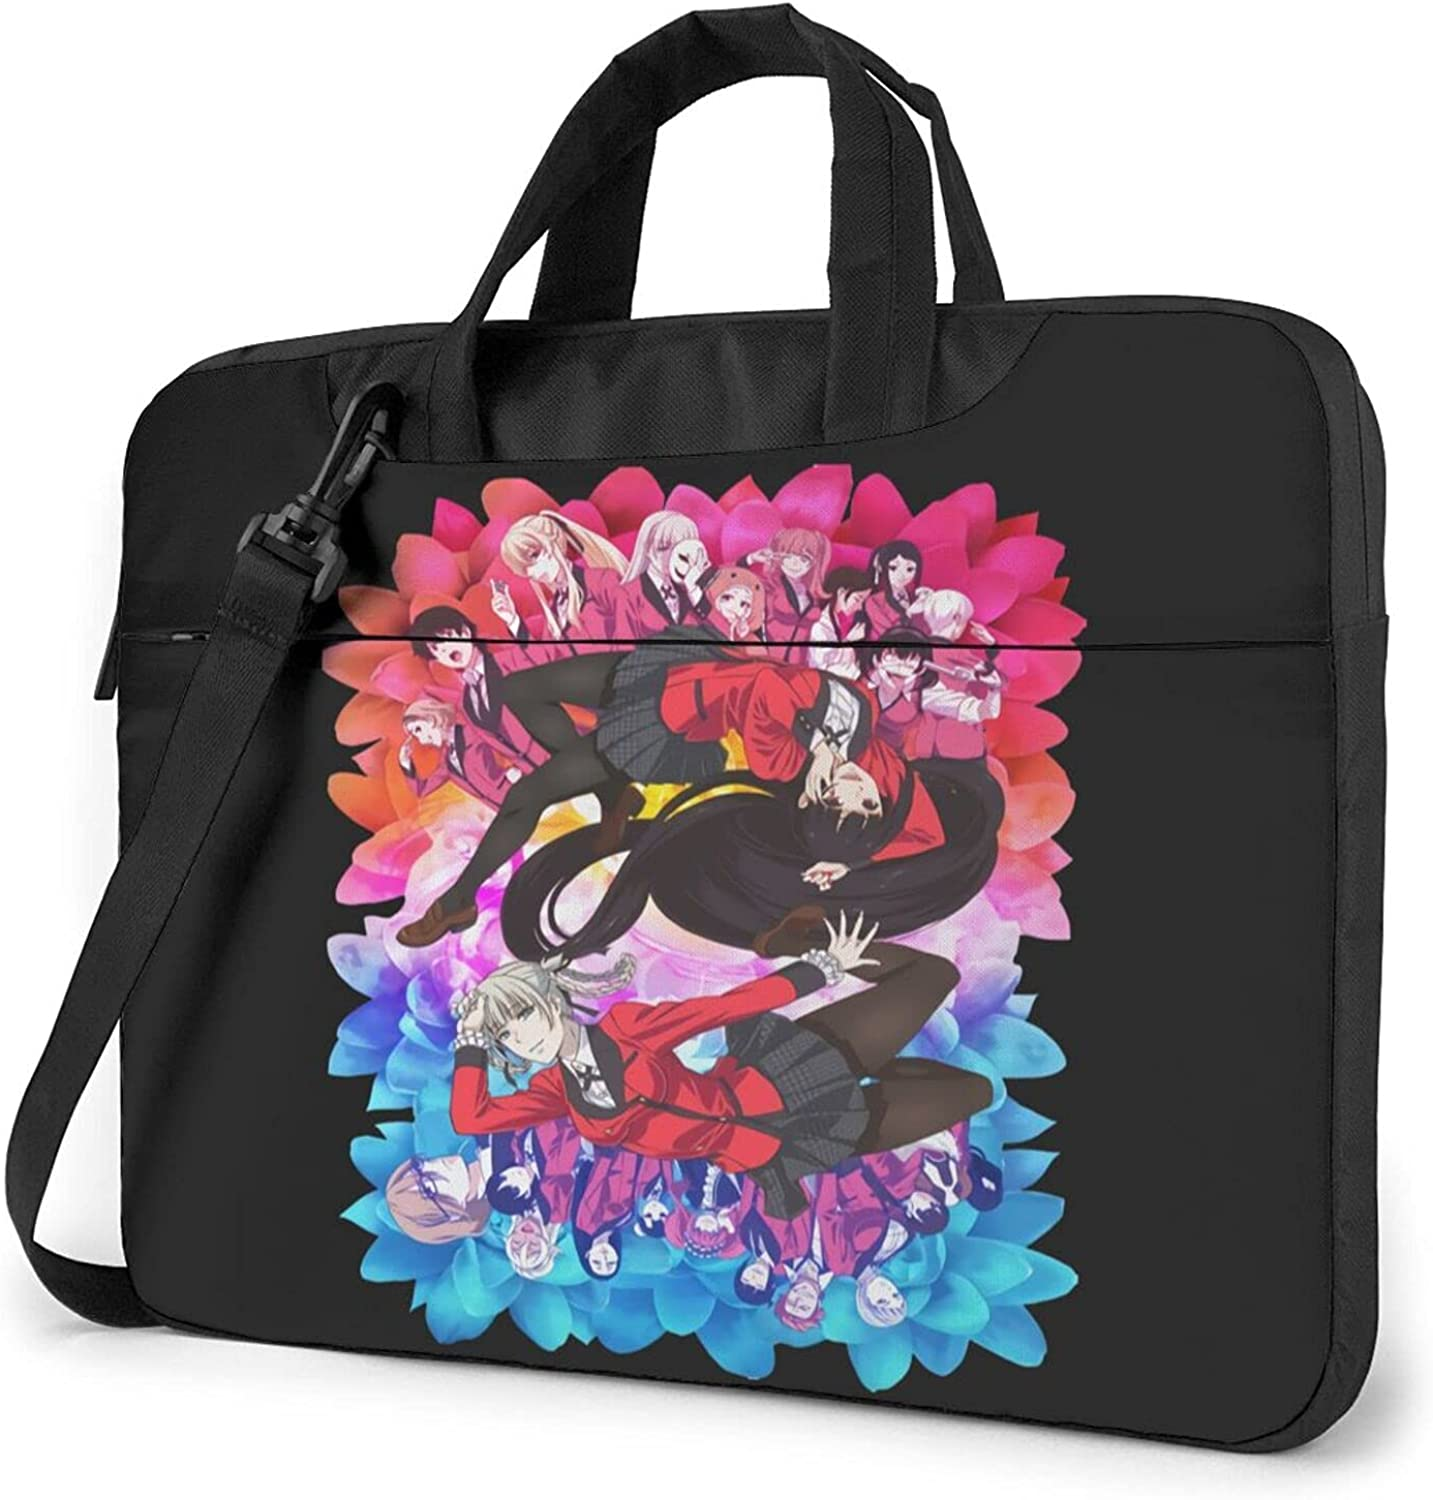 Kakegurui Max 41% OFF Laptop Cheap super special price Shoulder Bag Durable Case For Carrying Computer